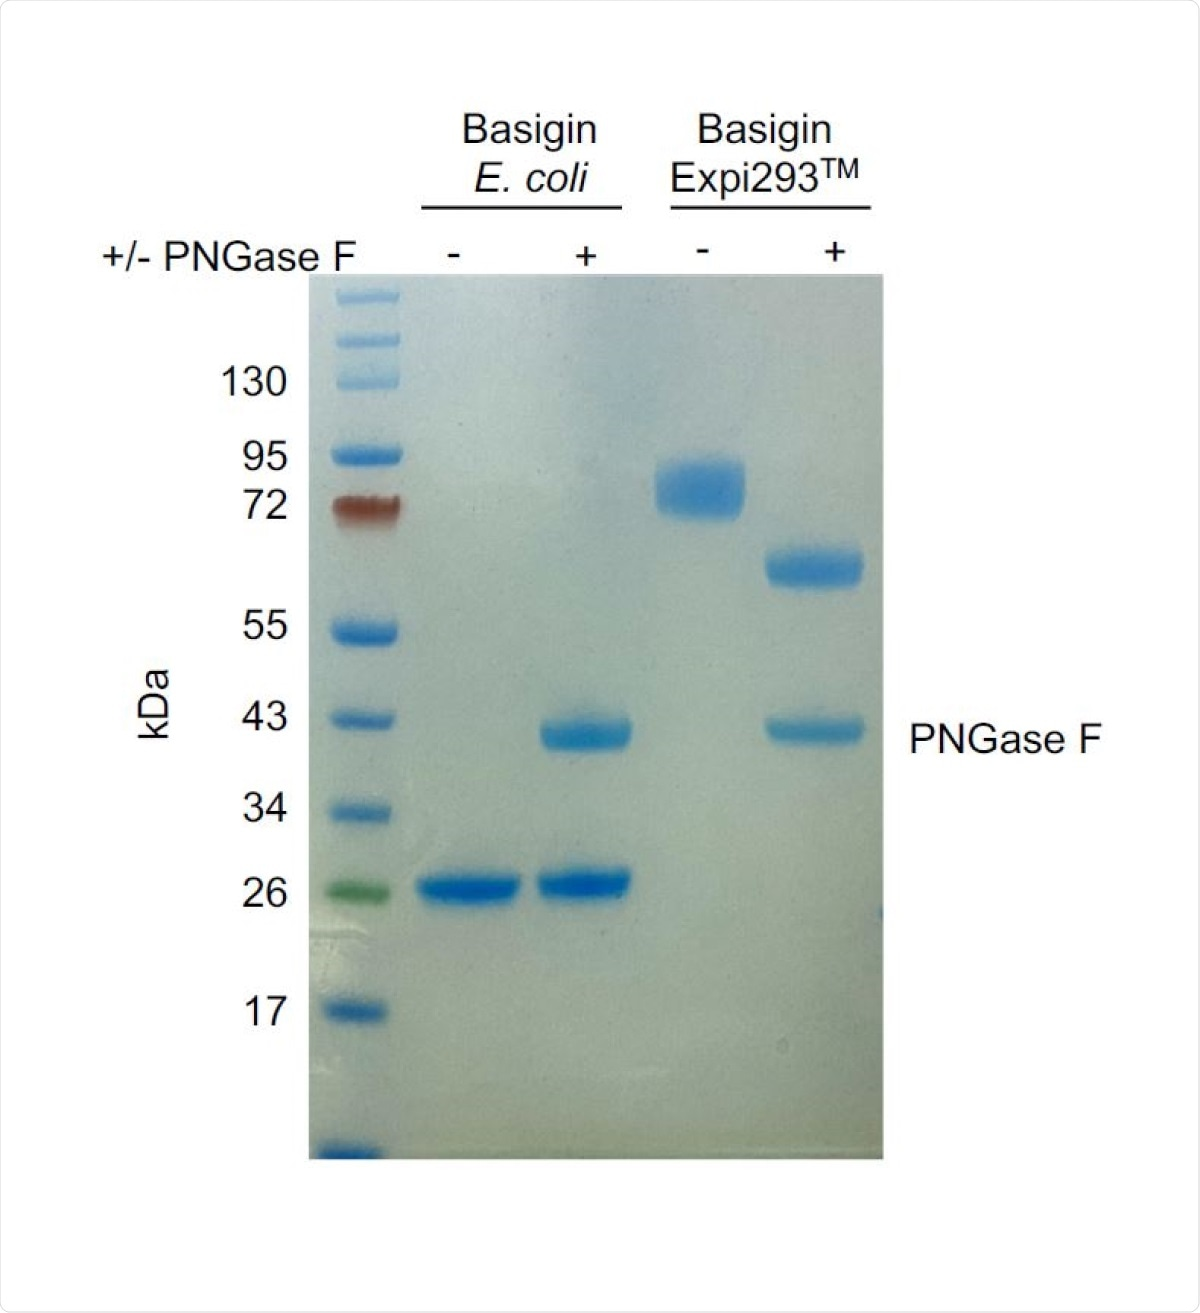 PNGase F digest of E. coli-expressed (non-glycosylated) and Expi293TMexpressed (glycosylated) basigin. The lower molecular weight of glycosylated basigin after PNGase F treatment is consistent with the loss of glycans. The heavier molecular weight of glycosylated basigin treated with PNGase F compared to non-glycosylated basigin can be attributed to the presence of the rat CD4 domains 3+4 (CD4d3+4) solubility tag (33 kDa).